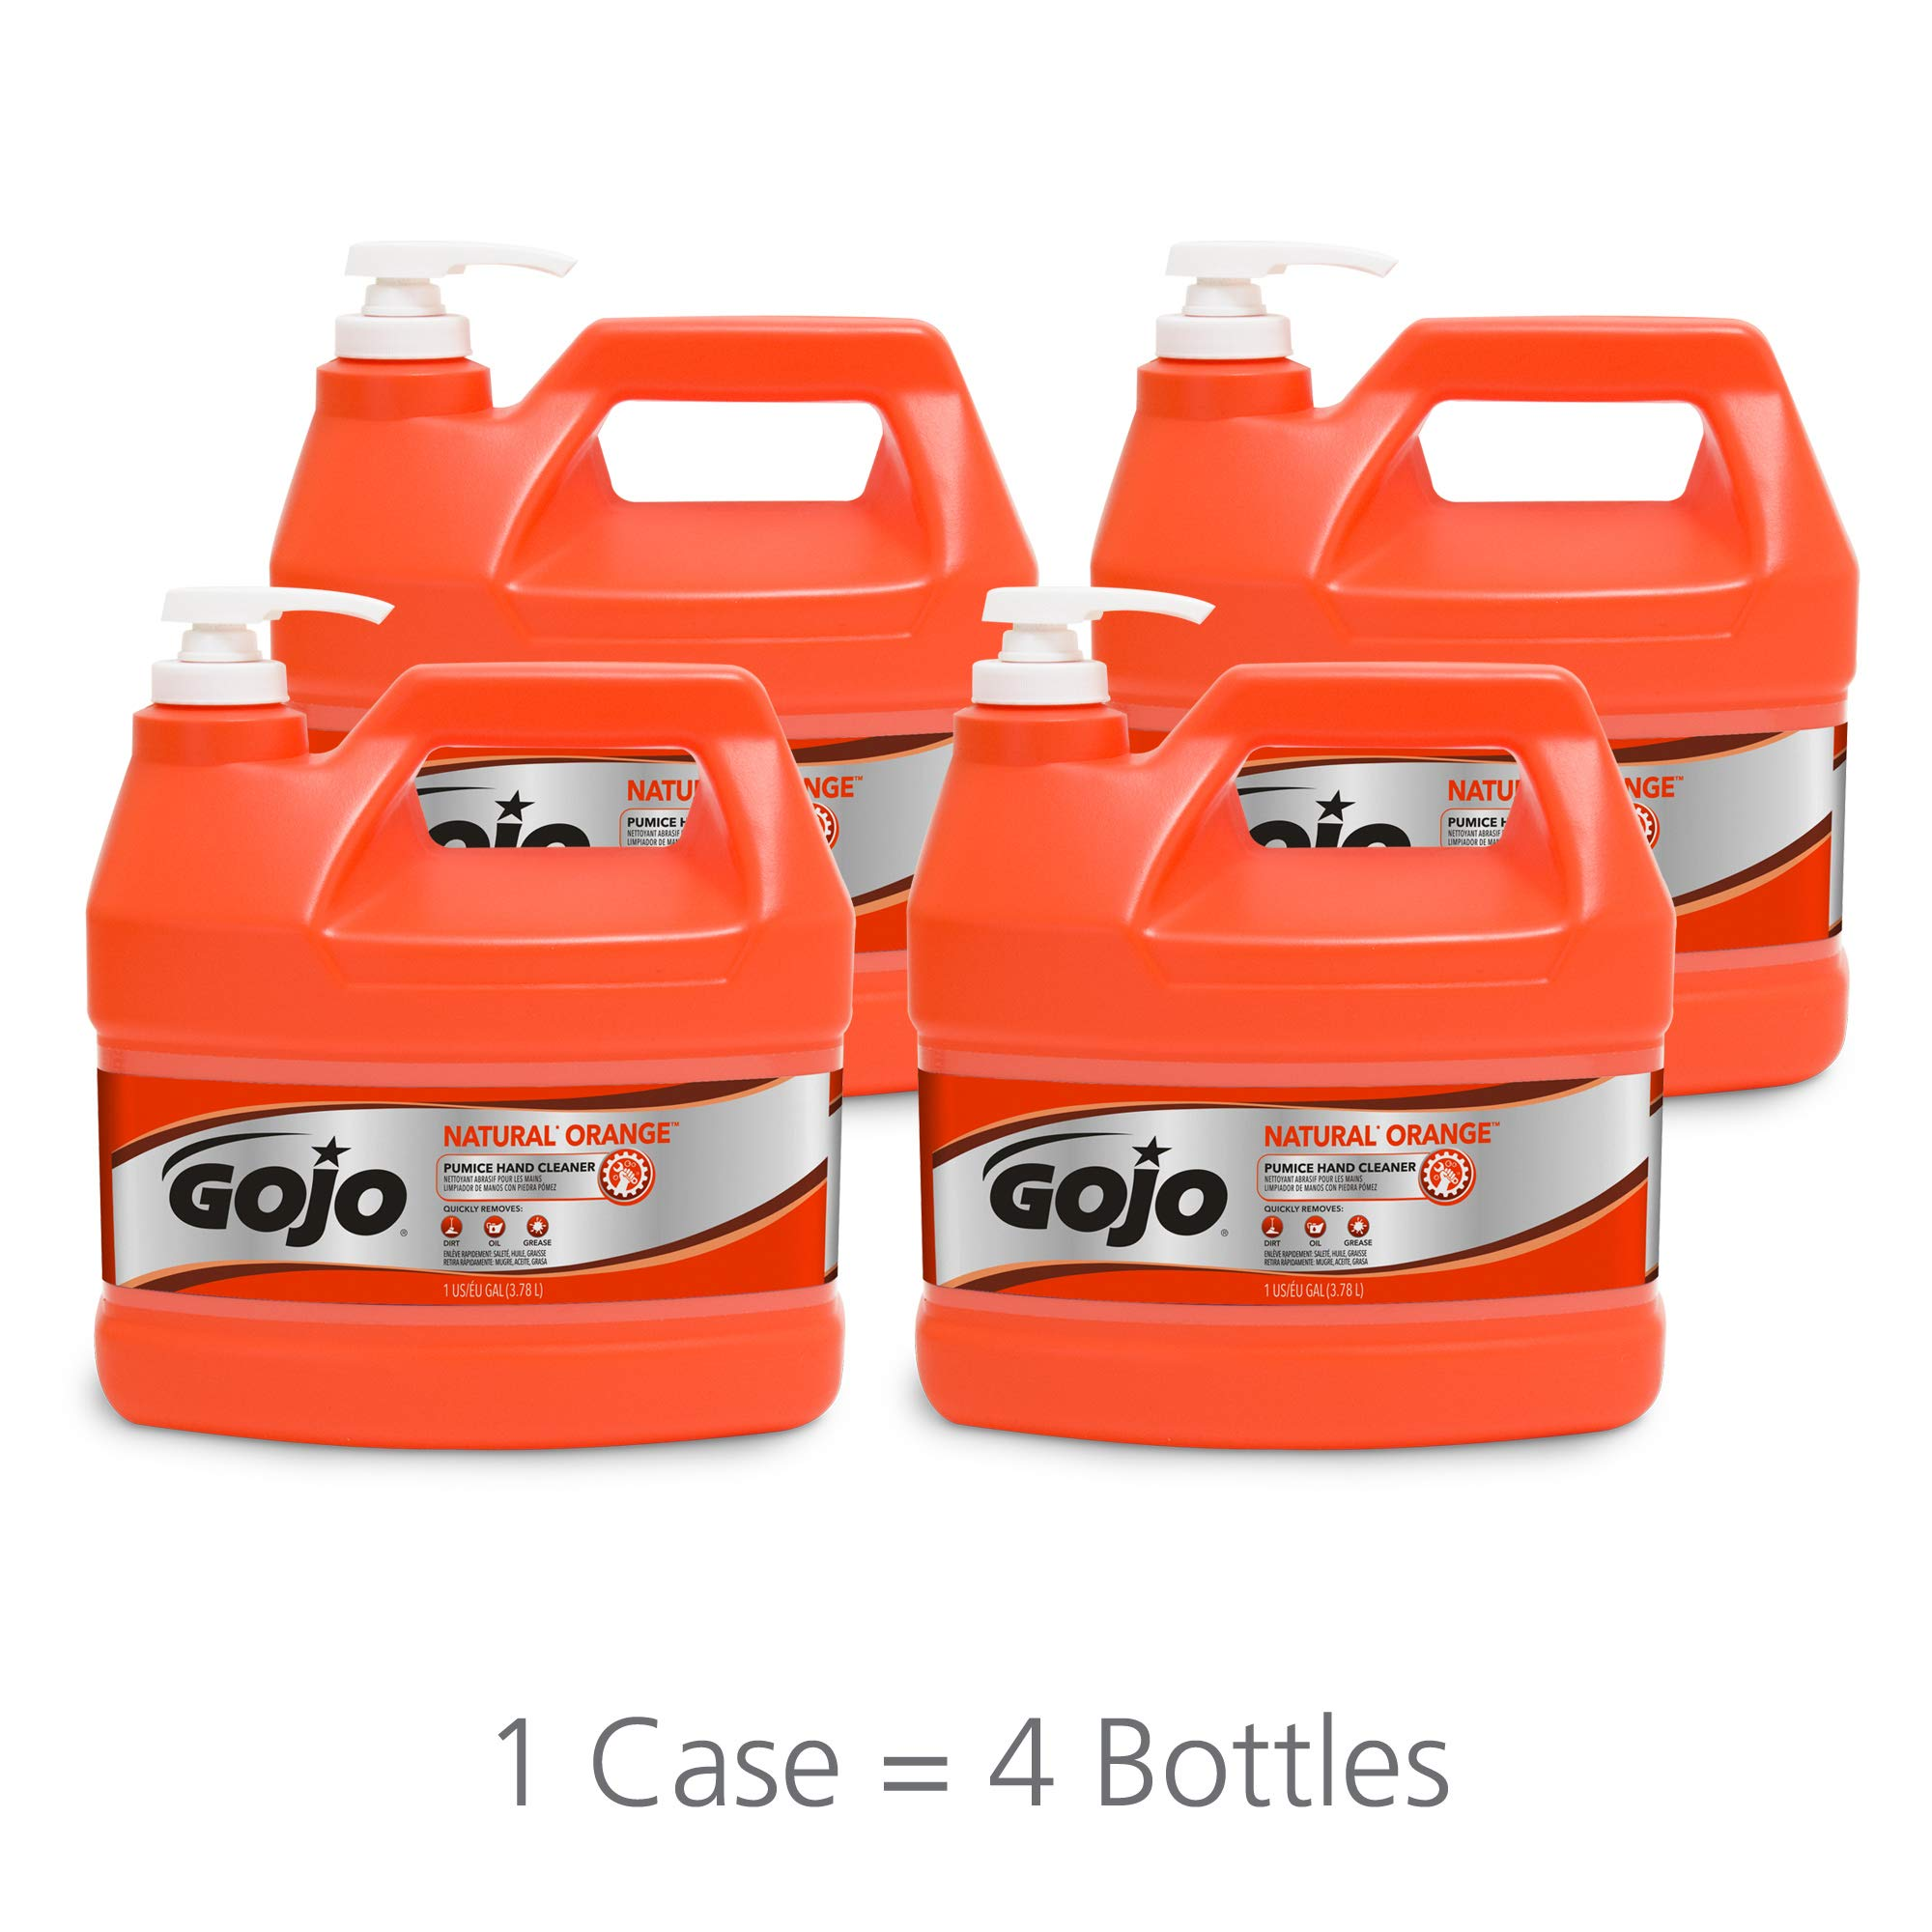 GOJO 0955-04 Natural Orange, Quick Acting Lotion Hand Cleaner with Pumice Pump Bottle, 1. gallons, 4 Pack by Gojo